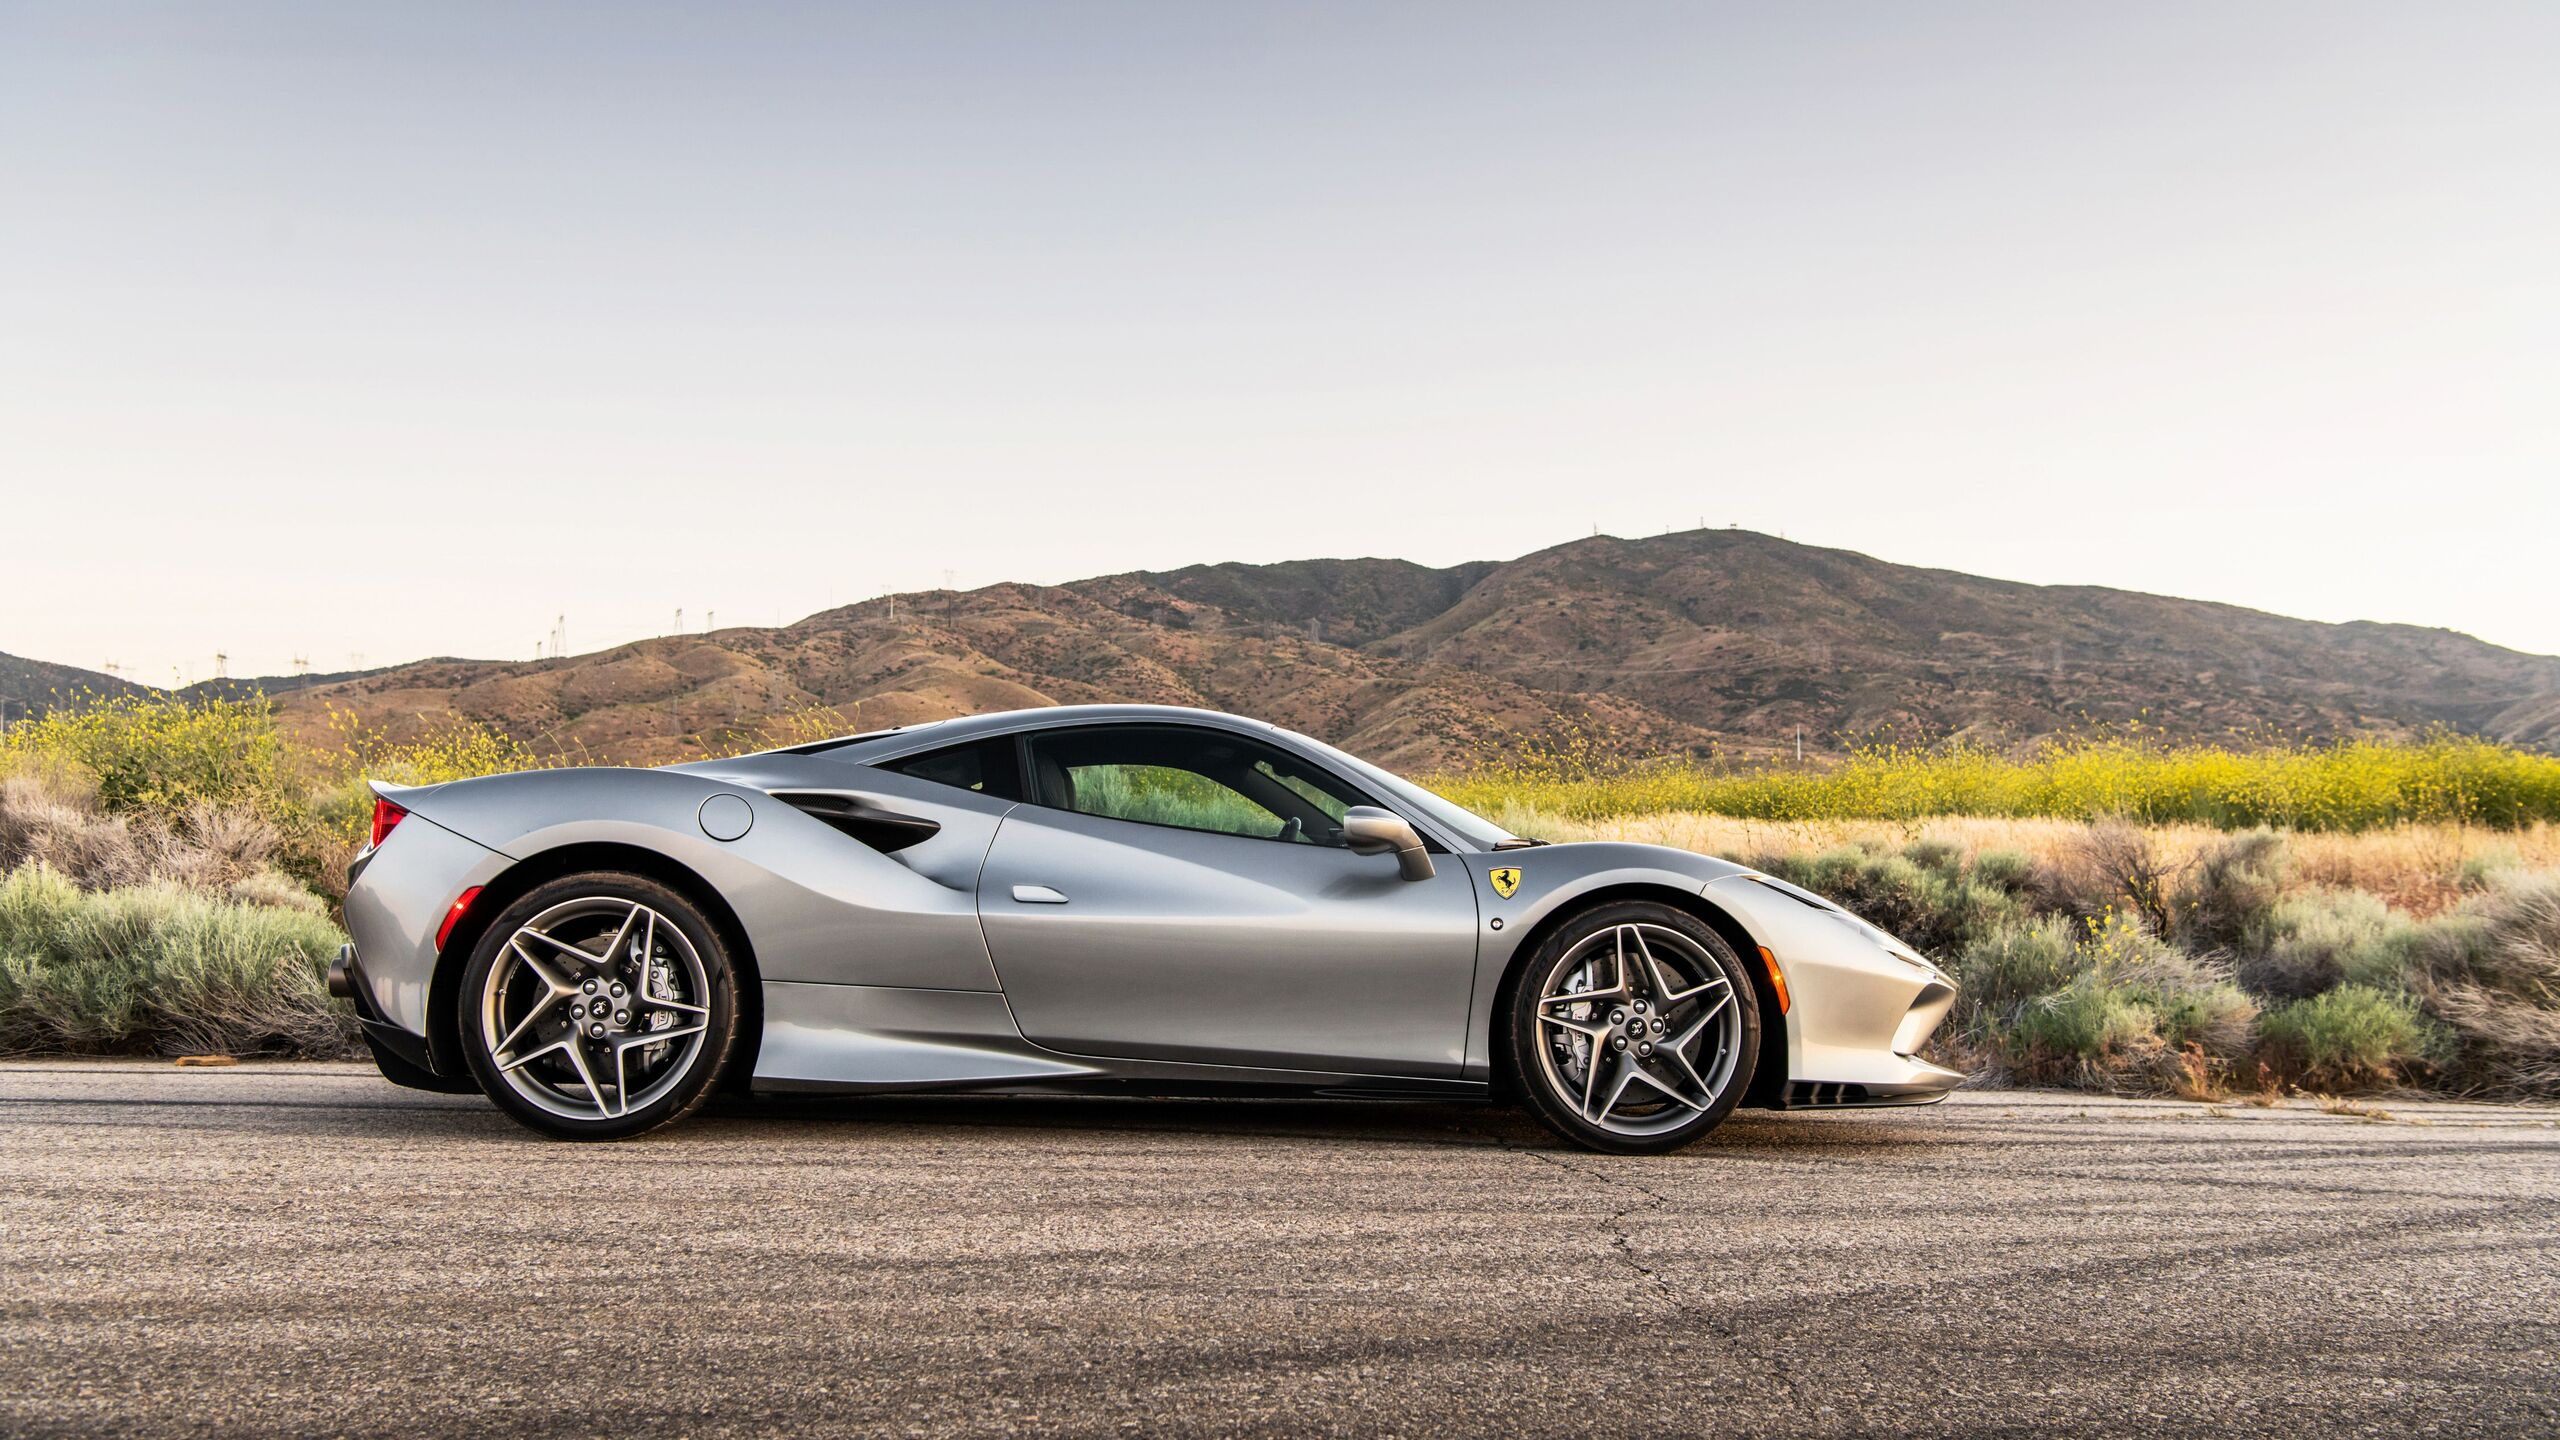 2560x1440 2020 Ferrari F8 Tributo Side View 1440p Resolution Hd 4k Wallpapers Images Backgrounds Photos And Pictures